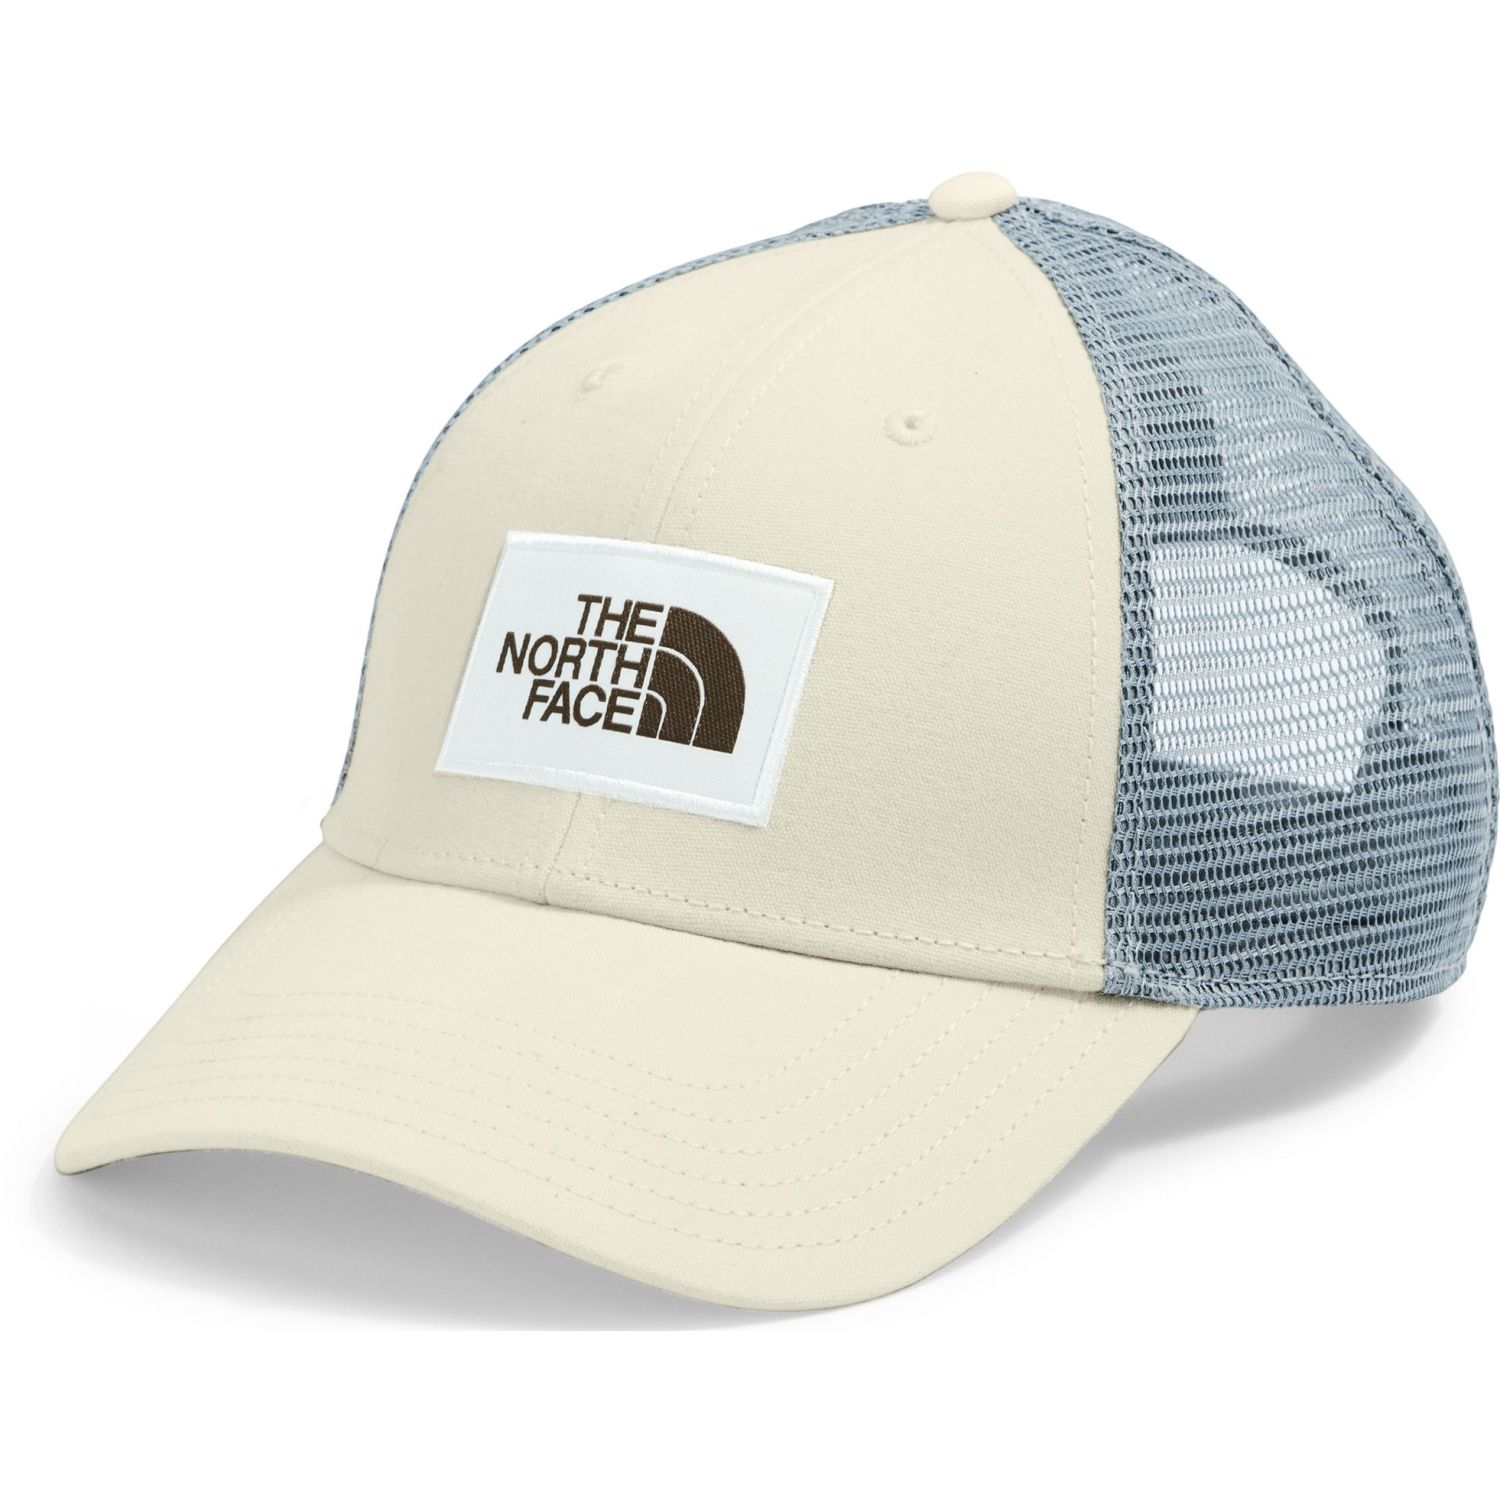 The North Face Mudder Trucker Hat Blanco Gorras de béisbol